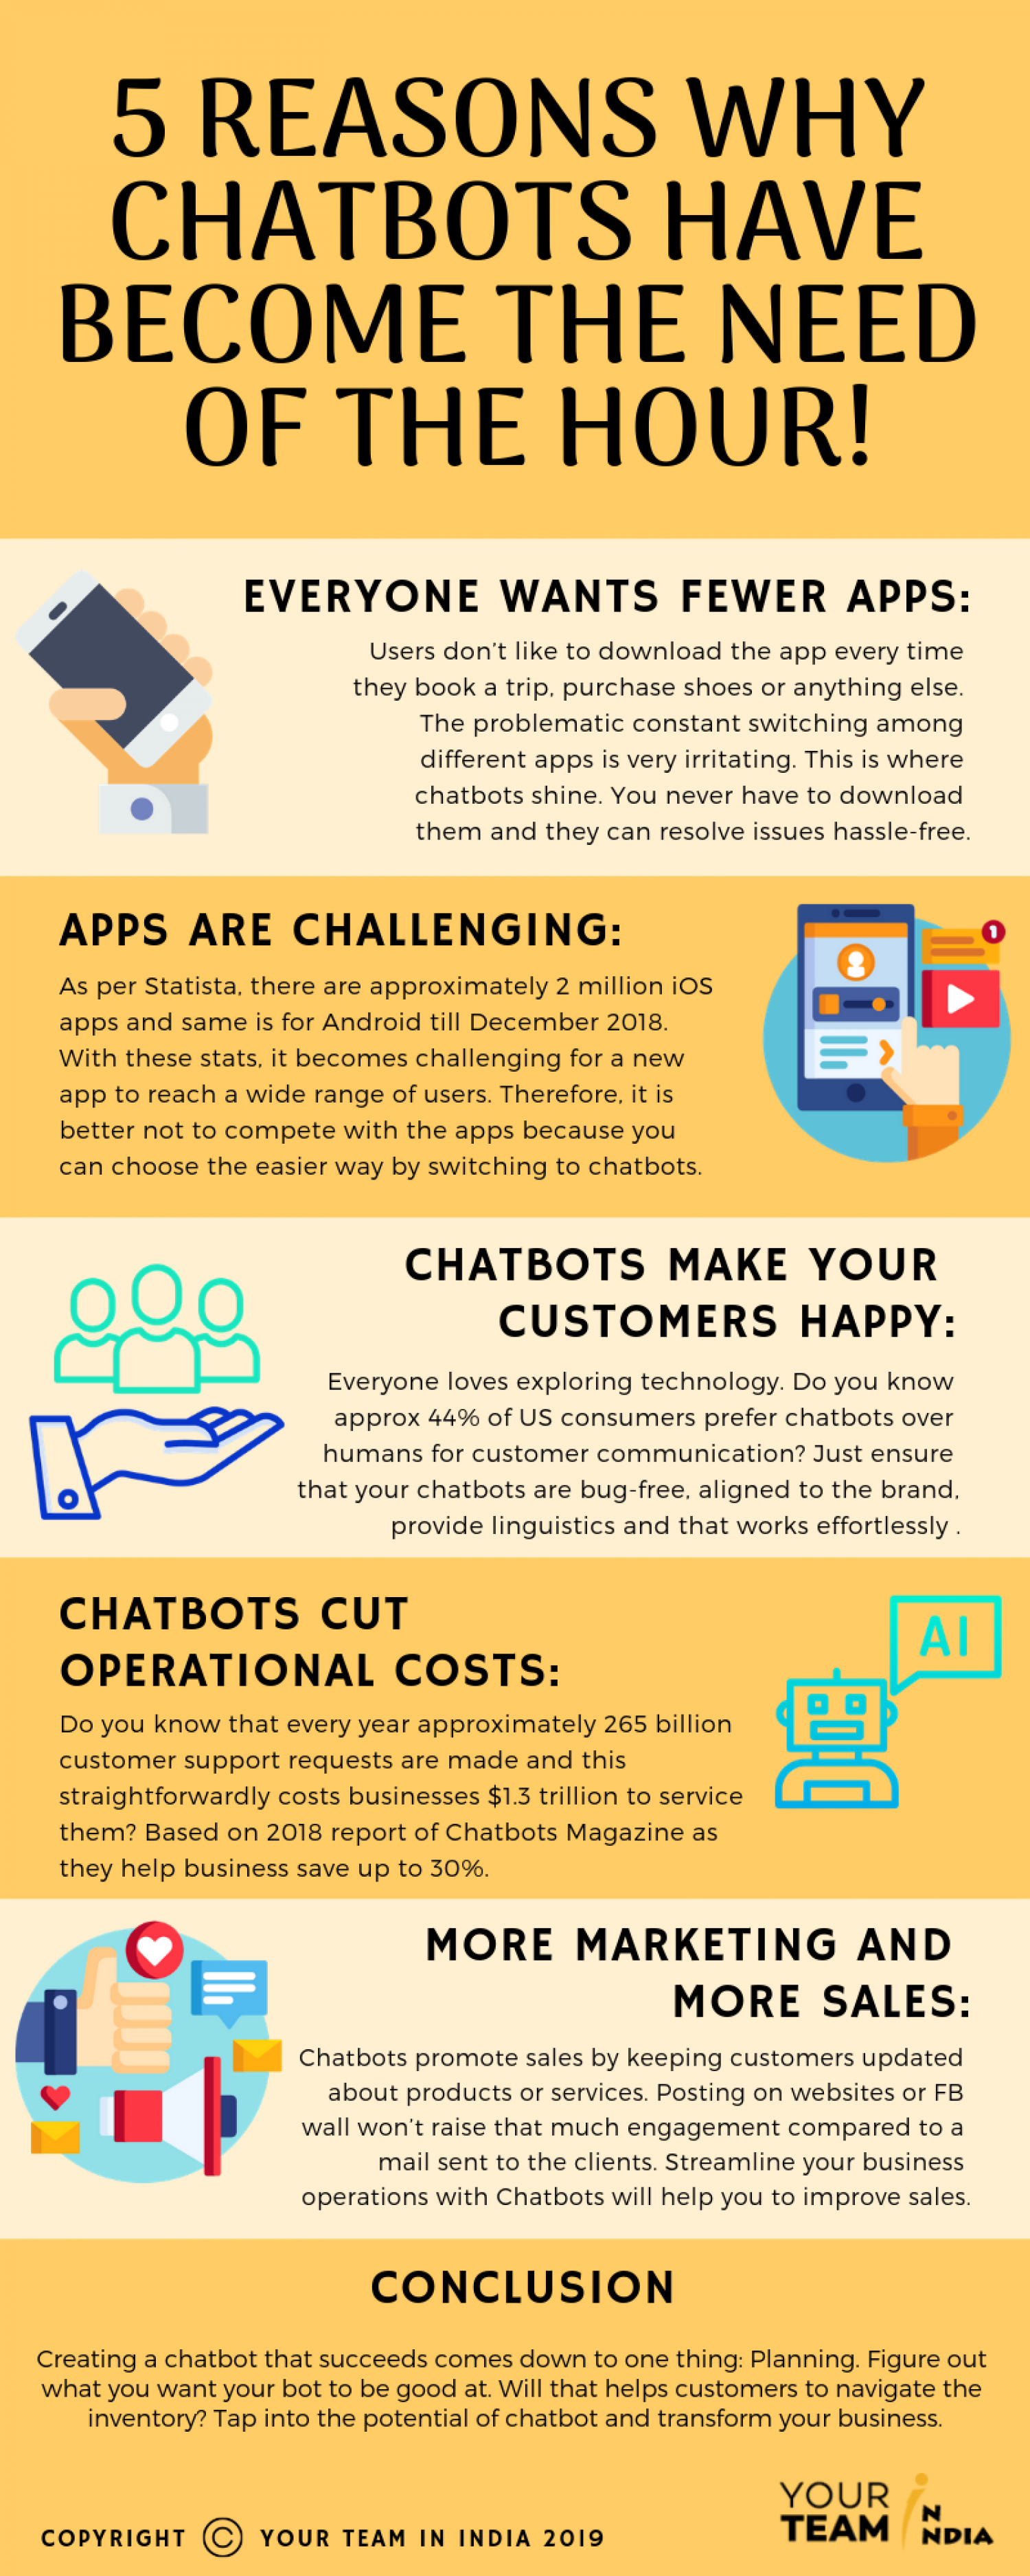 5 Reasons Why Chatbots Have Become the Need of the Hour! Infographic